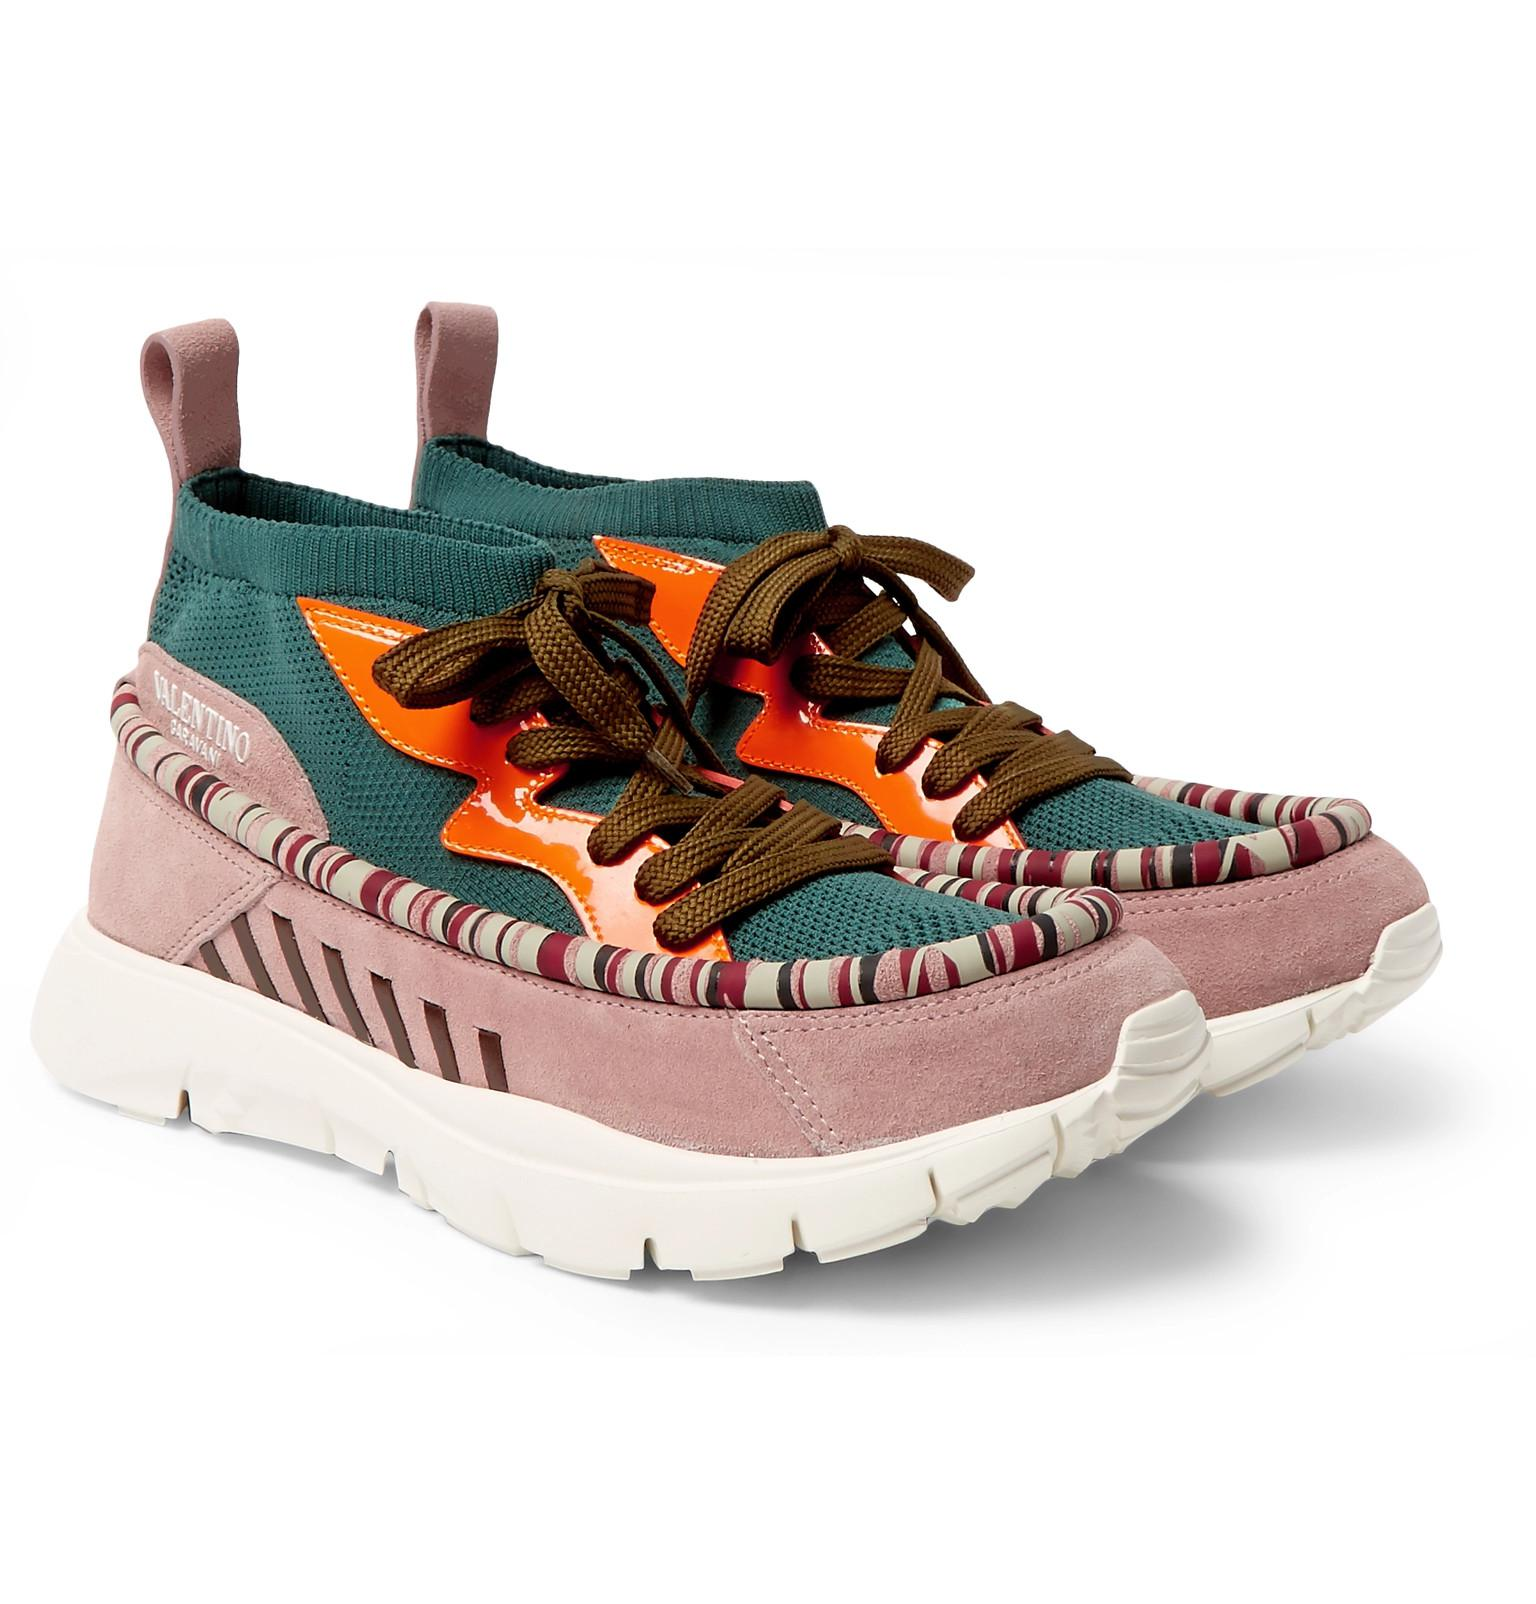 Big Sale Really Sale Online Garavani Heroes Tribe 1 Leather-trimmed Suede And Mesh Sneakers Valentino Cheap Perfect Enjoy Online Explore Cheap Online Eh4i3PSAu